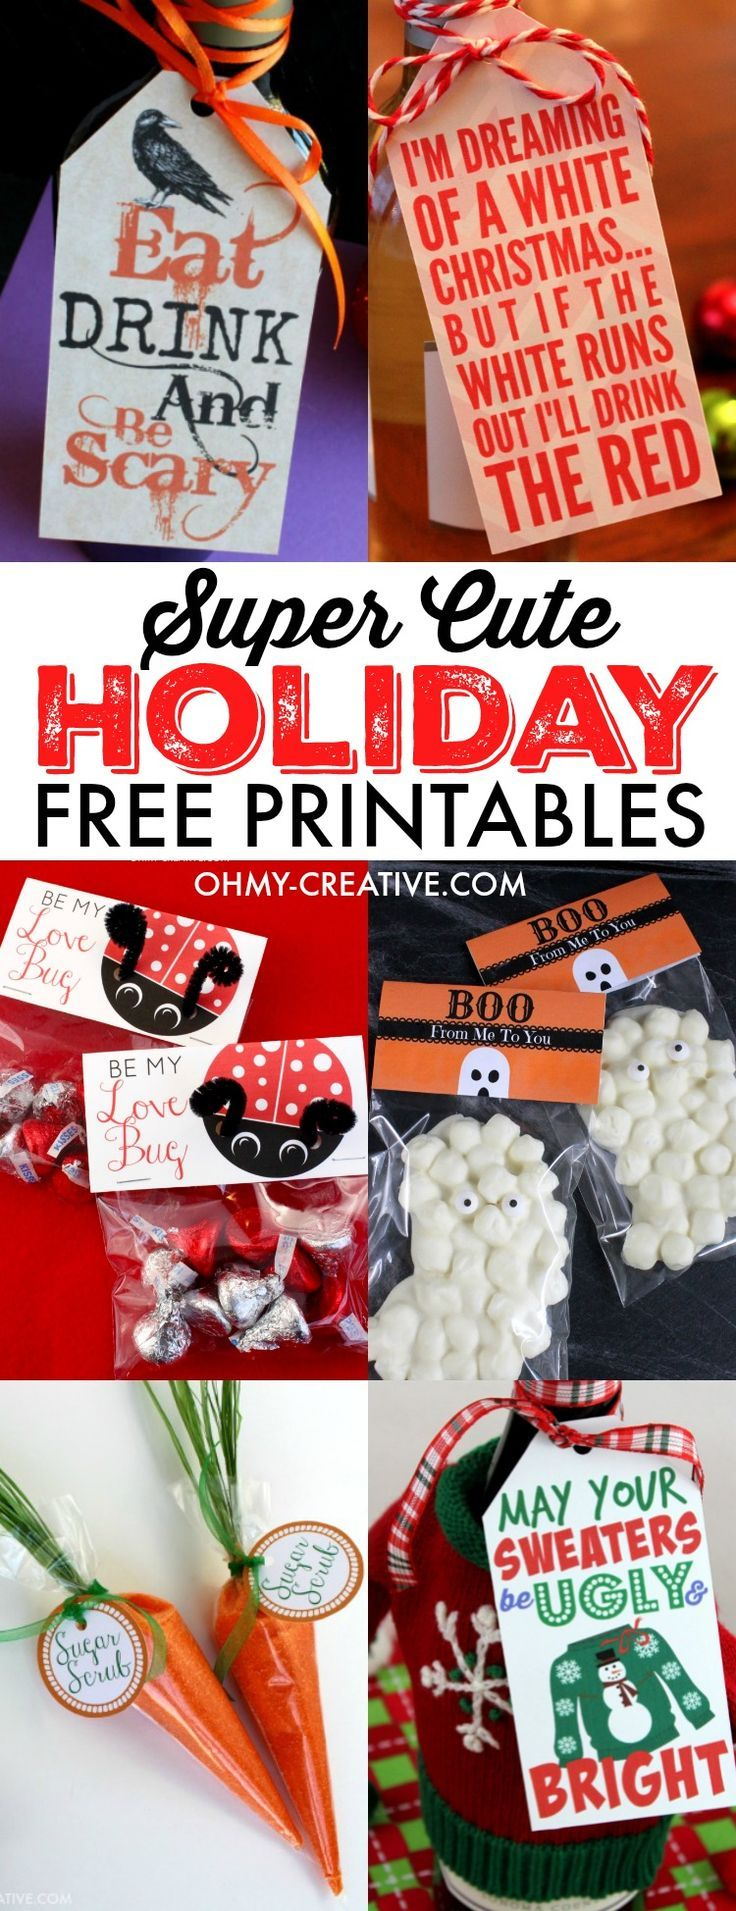 These Super Cute Holiday and Seasonal Free Printables are free to print all the time. You will find bag topper printables, gift tag printables and more! A fun printable collection for family and friends - great classroom printables for the kids to give as